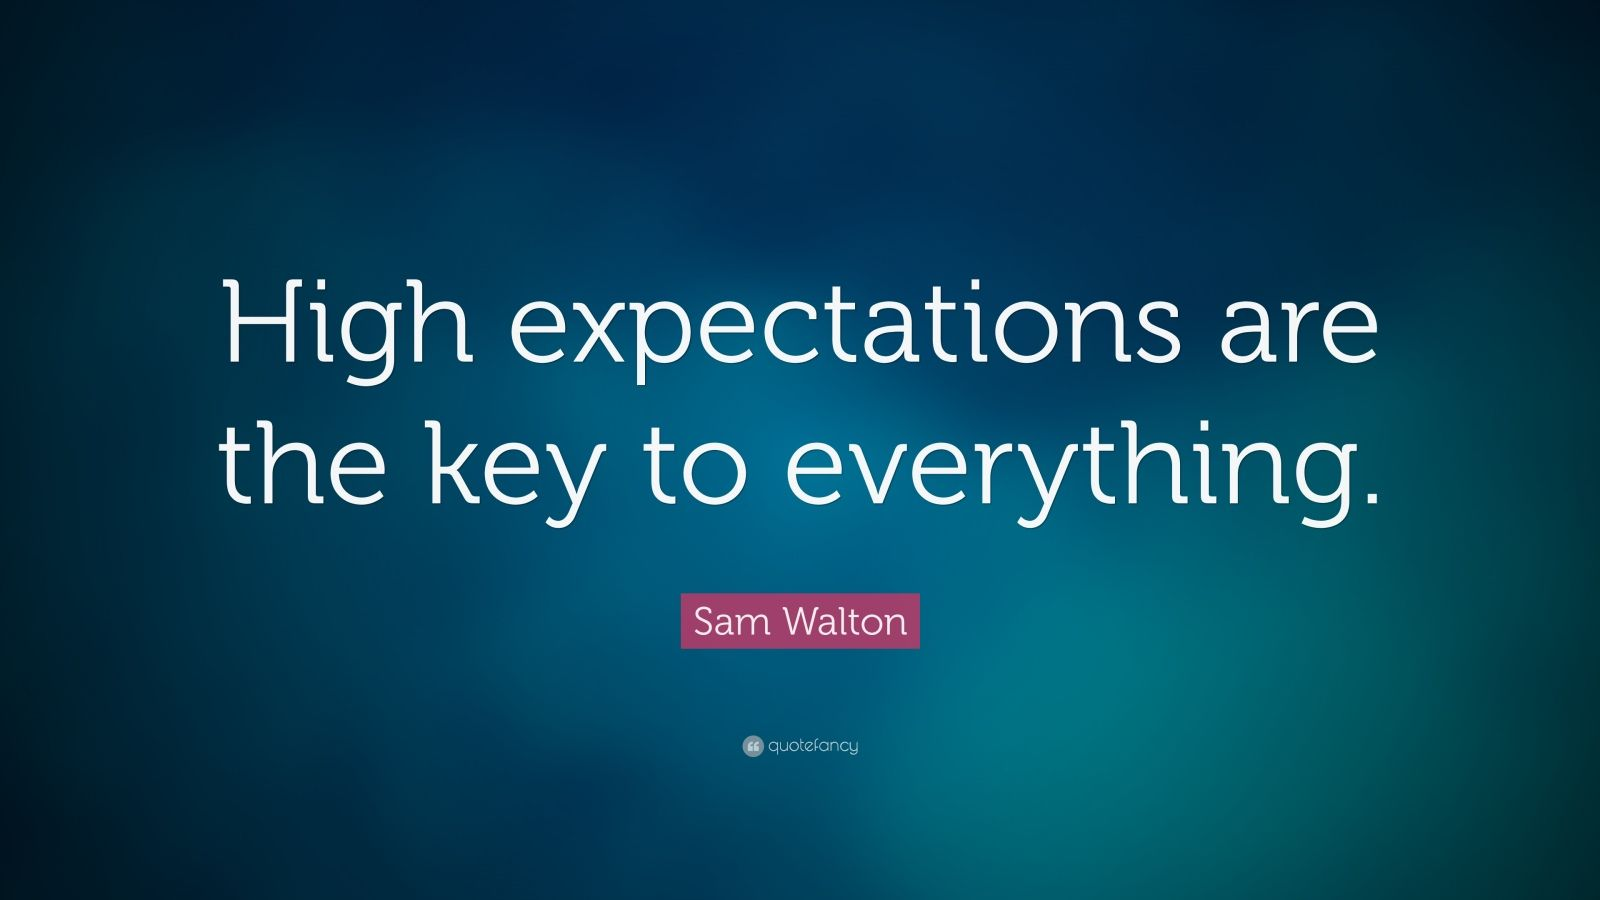 Expectations Quote Wallpapers Sam Walton Quote High Expectations Are The Key To